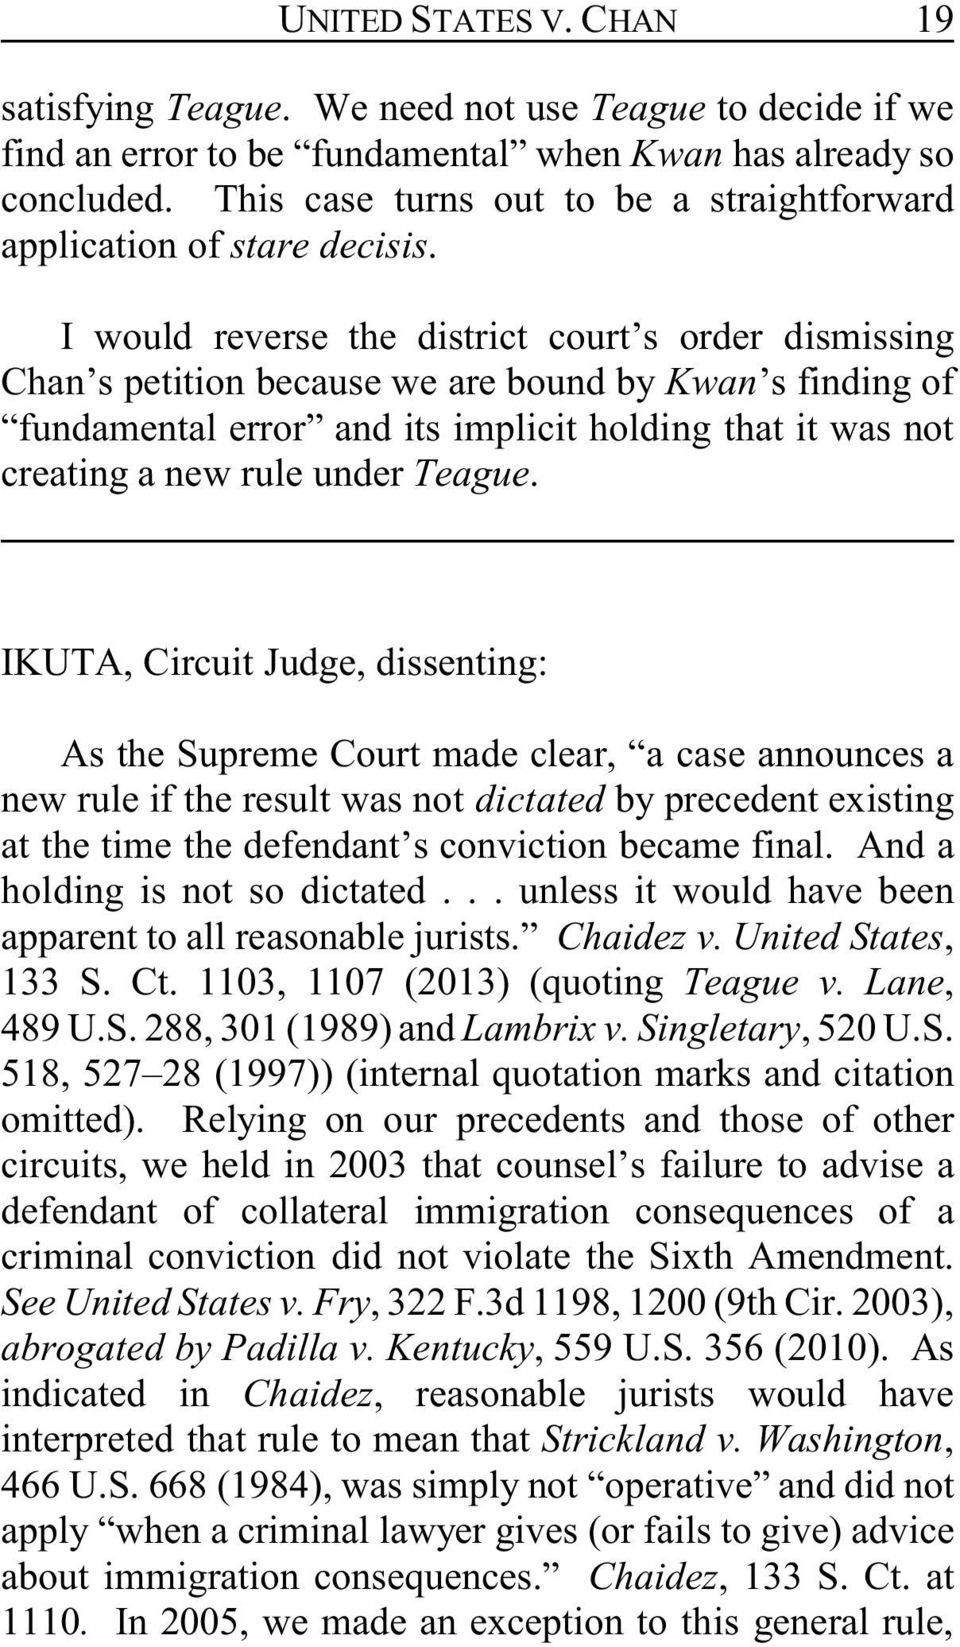 I would reverse the district court s order dismissing Chan s petition because we are bound by Kwan s finding of fundamental error and its implicit holding that it was not creating a new rule under